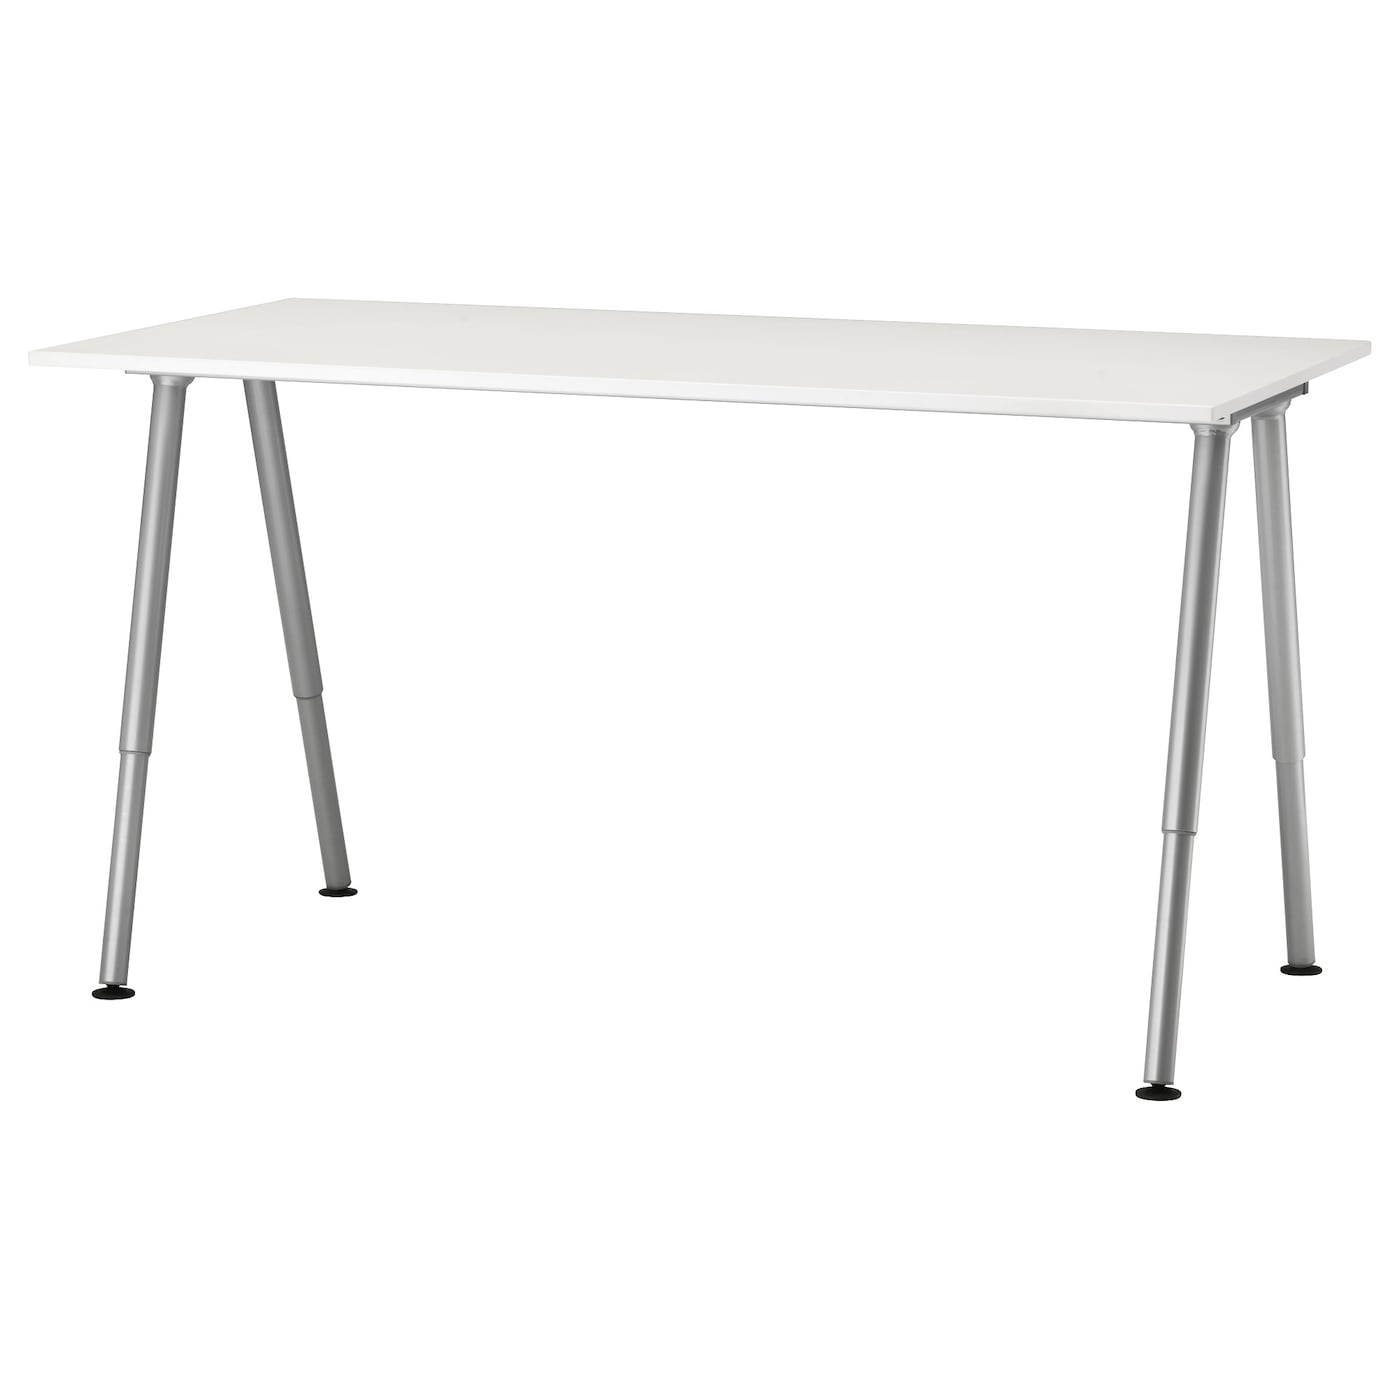 foldable office table. IKEA THYGE Desk The Melamine Surface Is Durable, Stain Resistant And Easy To Keep Clean Foldable Office Table